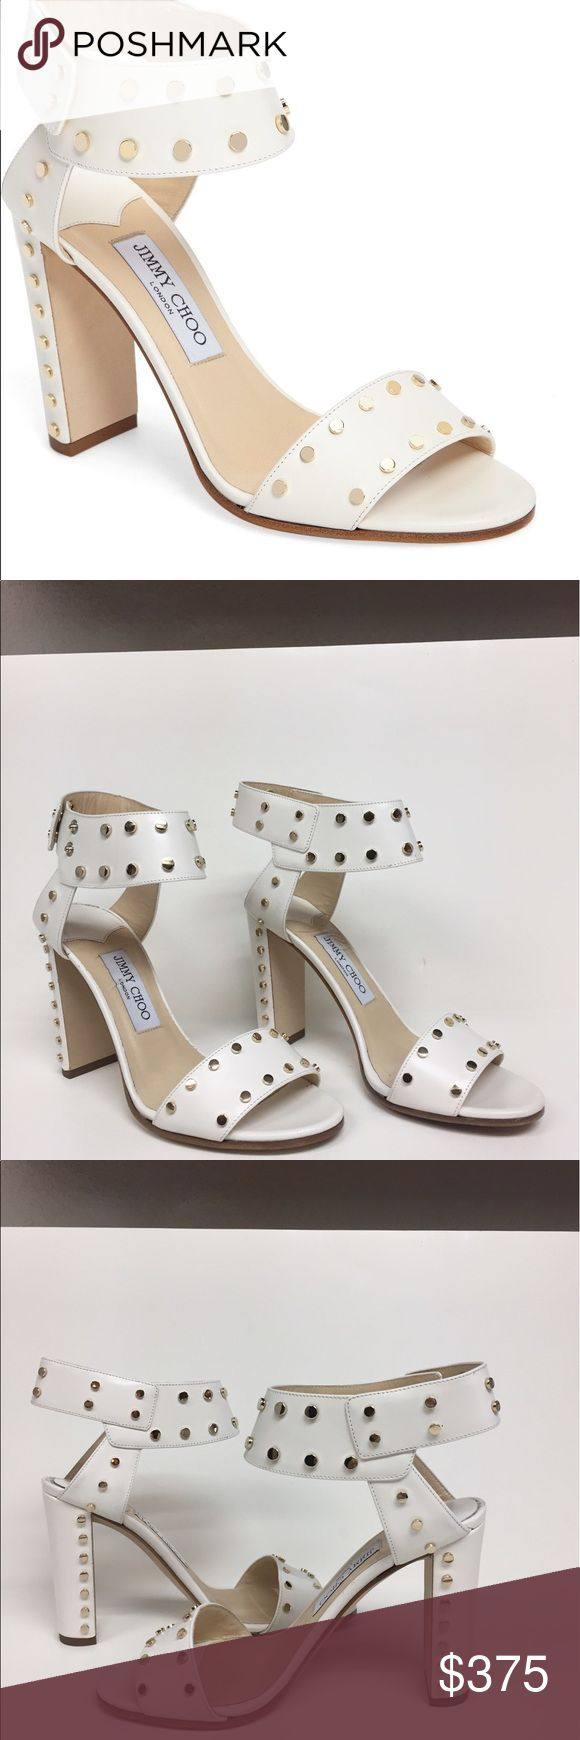 Jimmy Choo Veto 100 white stud rockstar sandals Clear linear lines are injected with personality in these gorgeous Jimmy Choo shoes. White leather with gold studs. Snap closure. Heel is 4 inches. Fabulous condition. All studs are there and perfect. Worn slightly on the bottom Jimmy Choo Shoes Sandals